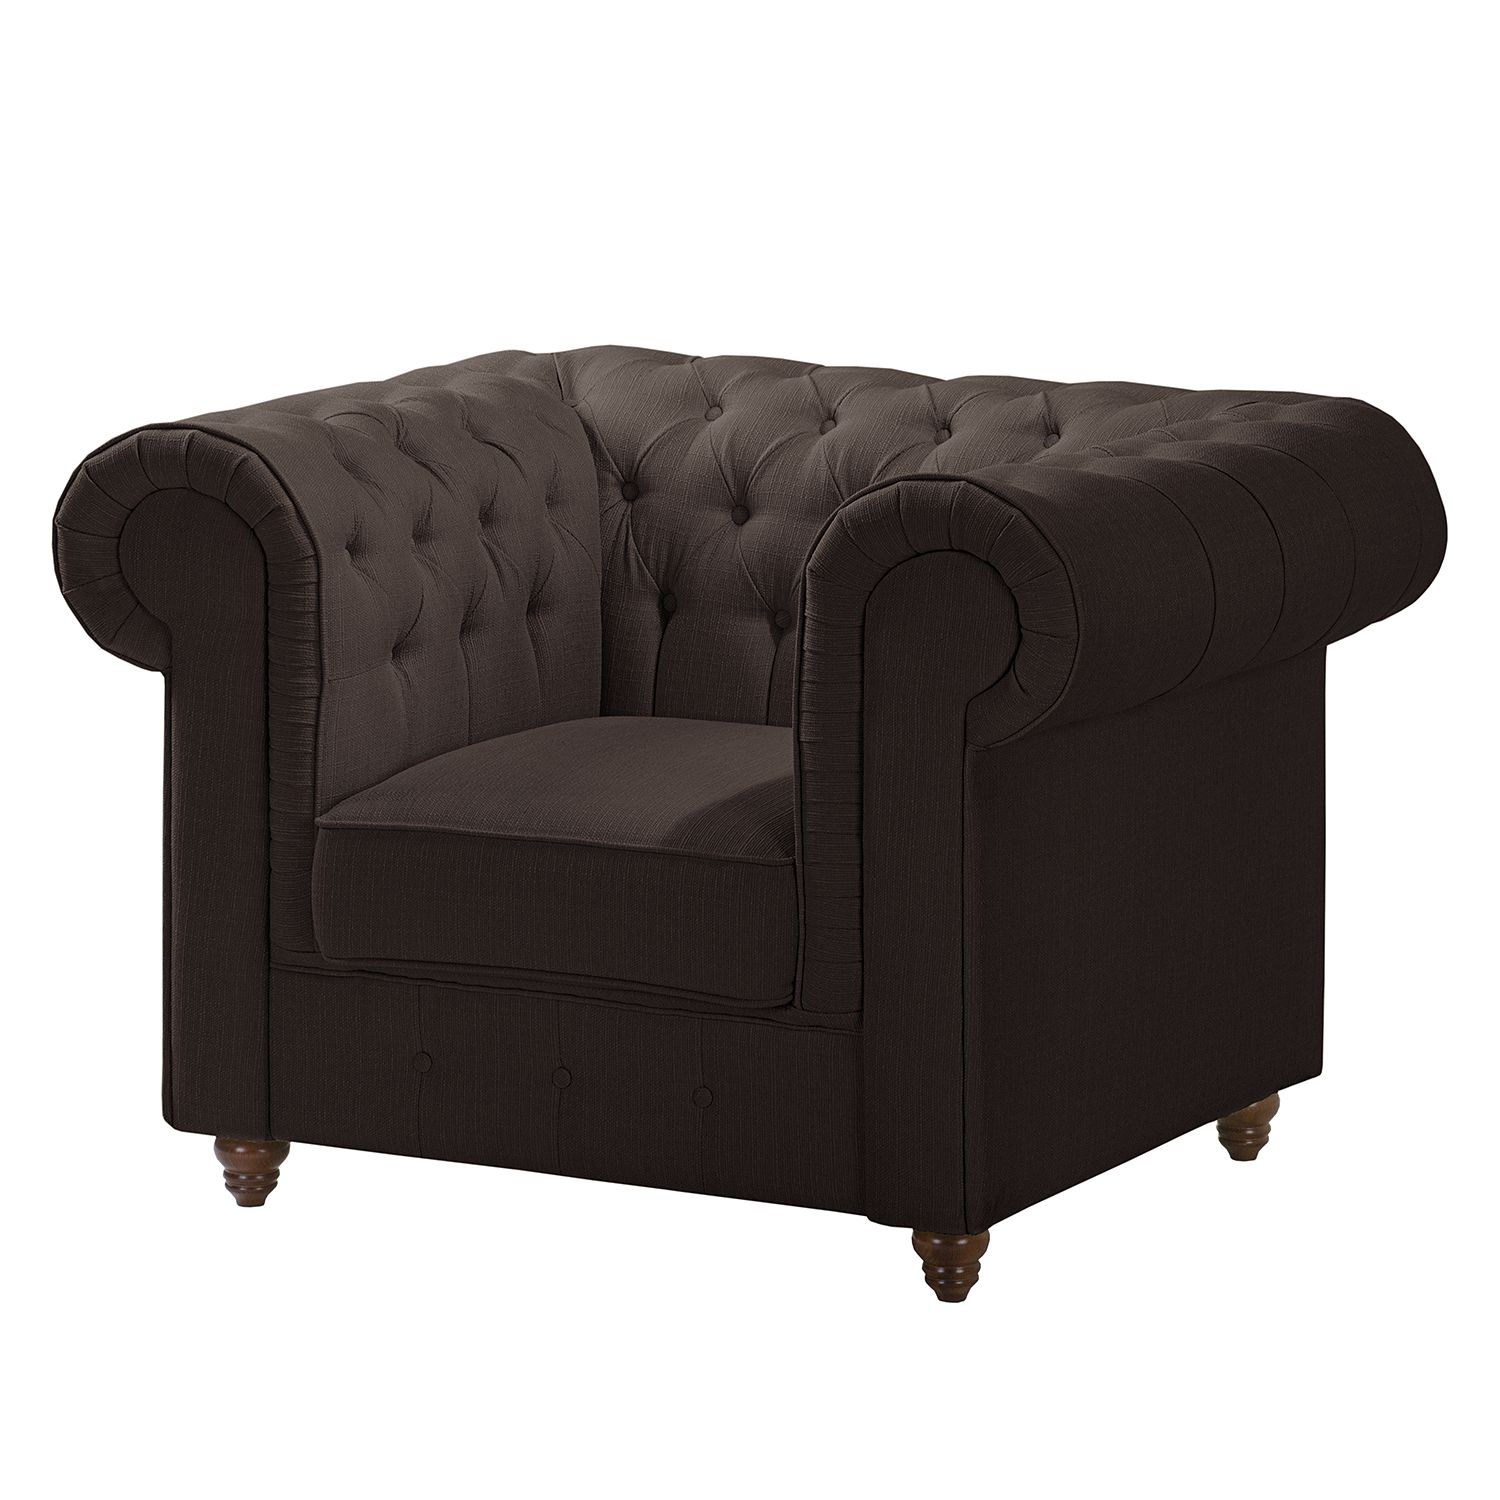 Fauteuil Chesterfield Pintano - Tissu - Expresso, ars manufacti